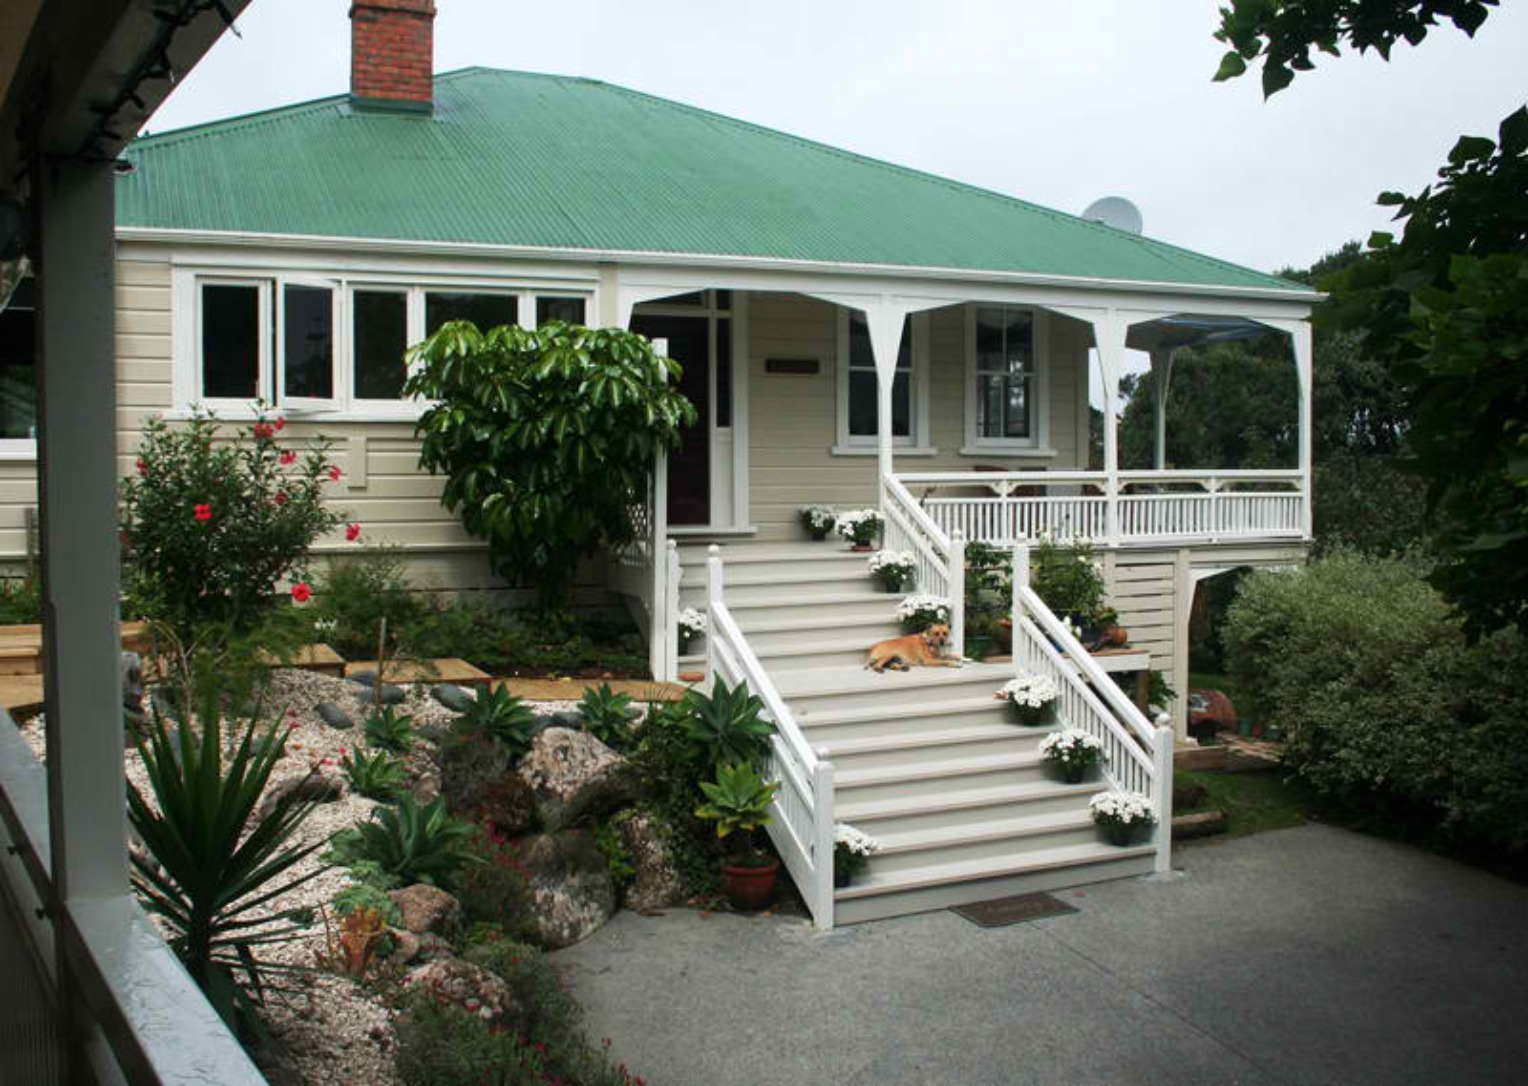 A house with bushes in front of a building at Villa Russell.